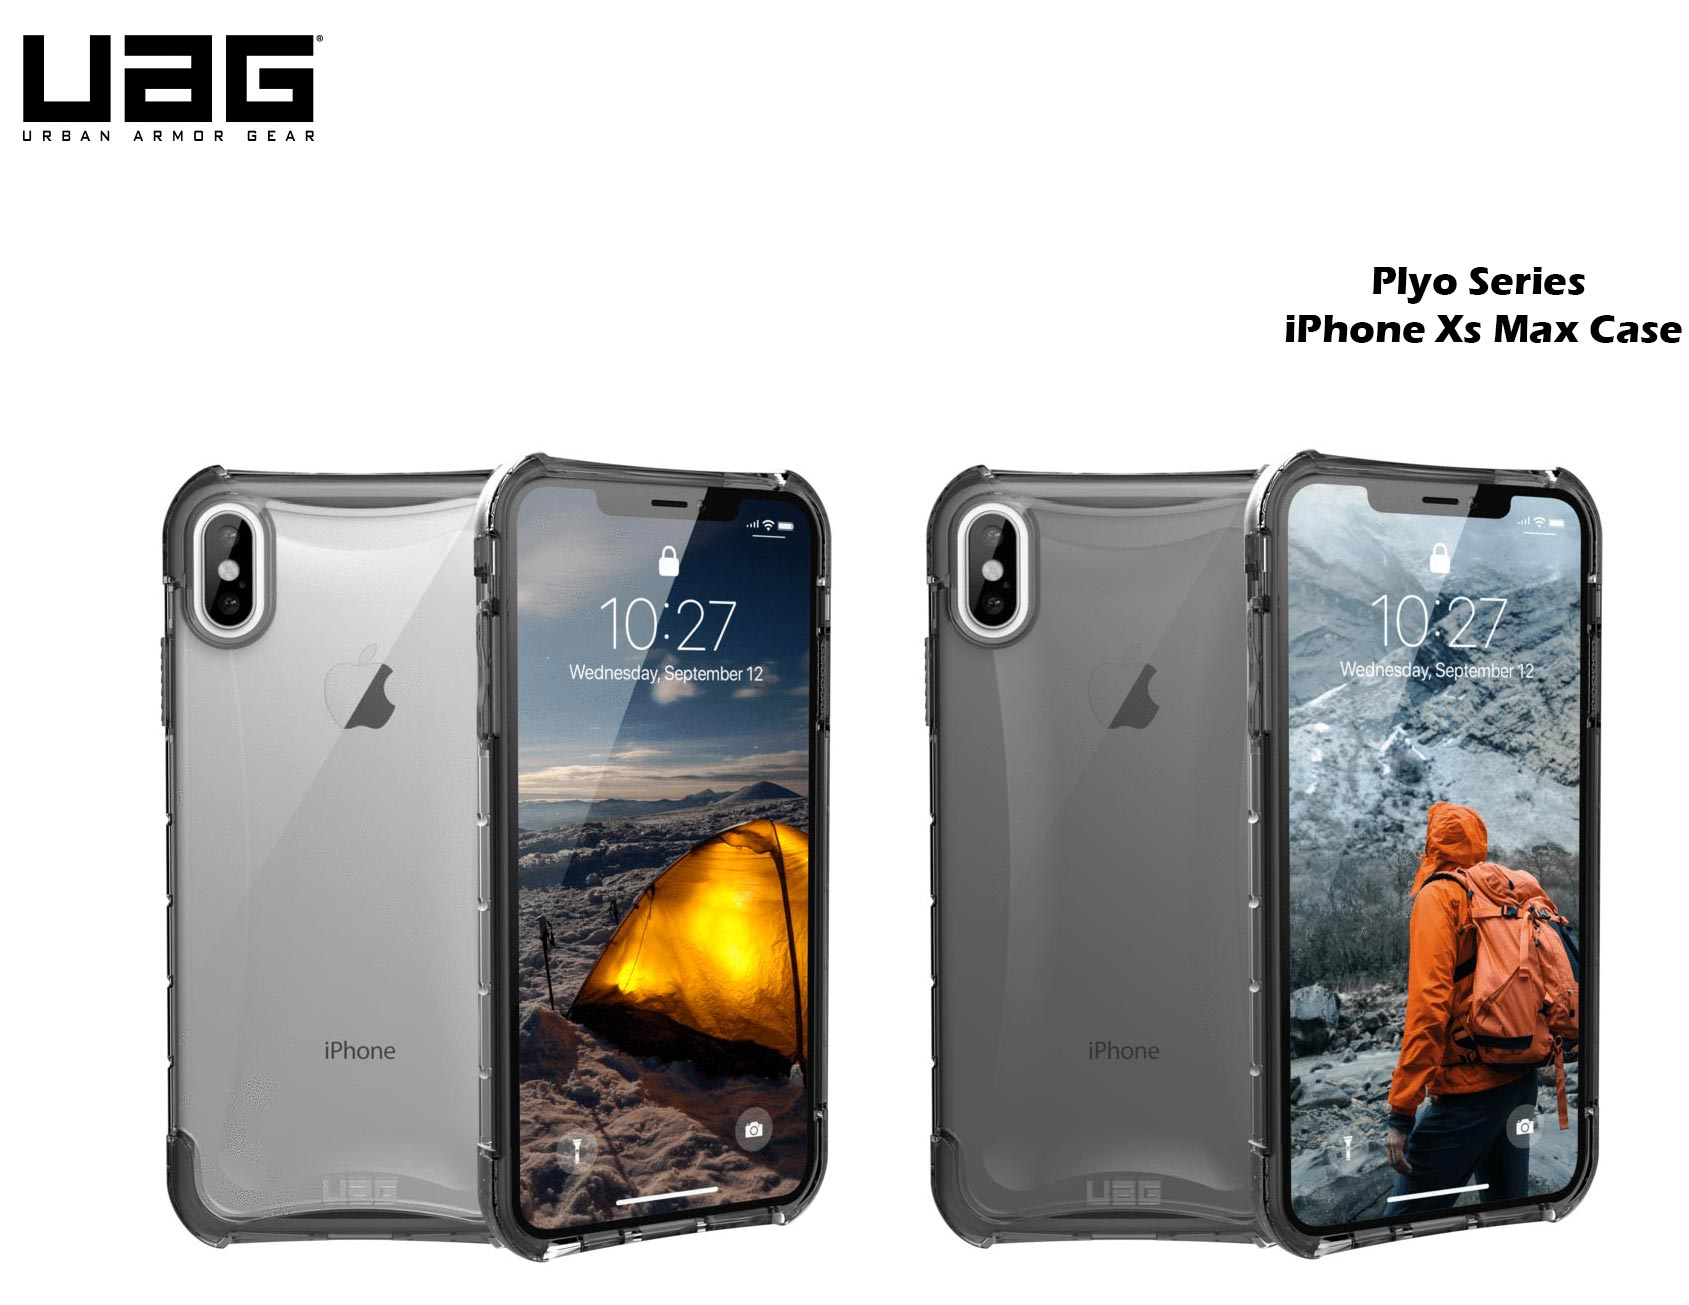 reputable site a6fc5 8980c UAG Casing for iPhone XS Max Plyo Ice